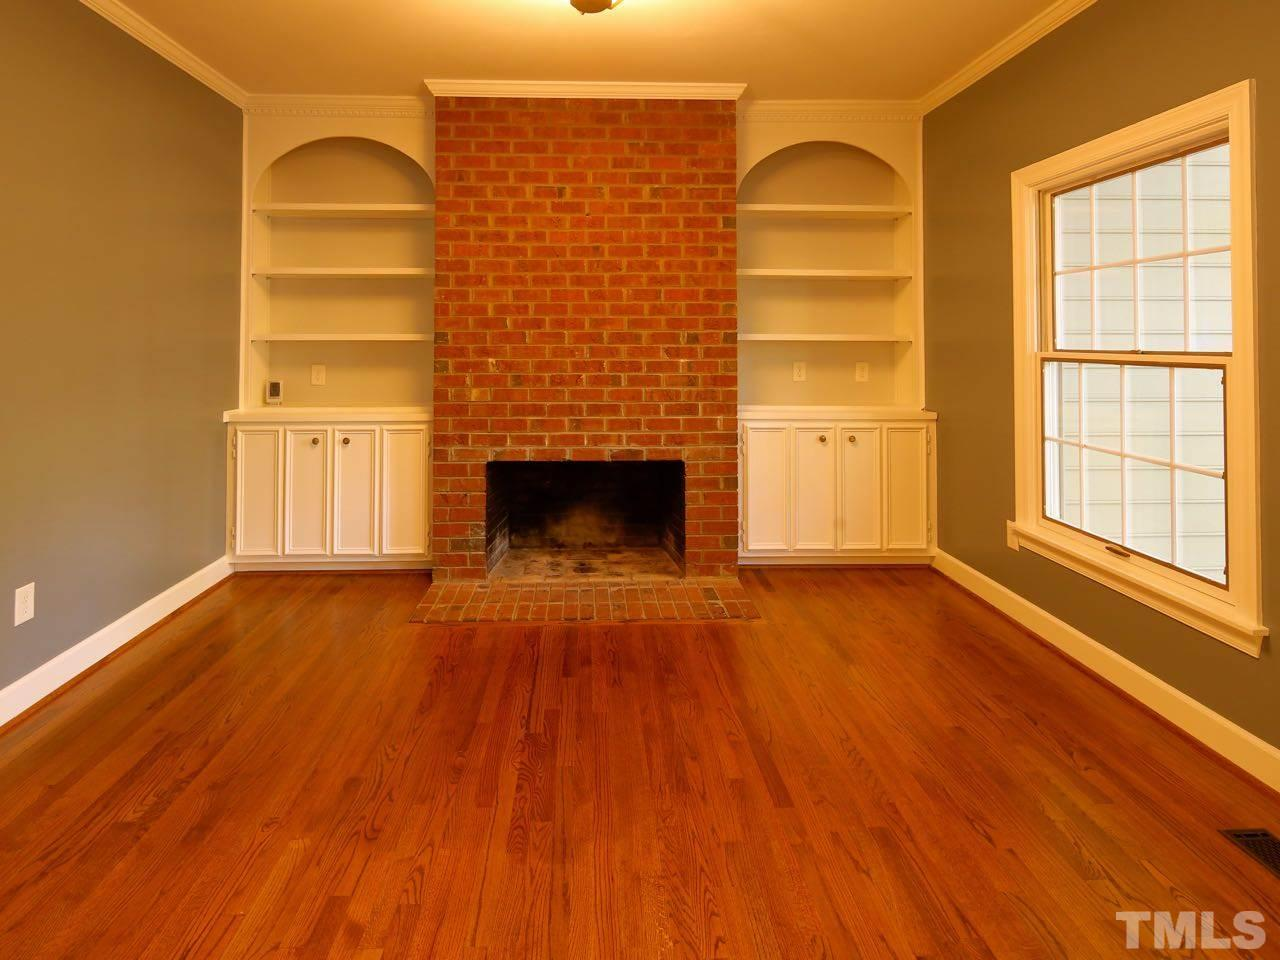 Gleaming hardwood floors run throughout the main level. These are the real deal: 3/4 inch, site-finished solid oak floors.